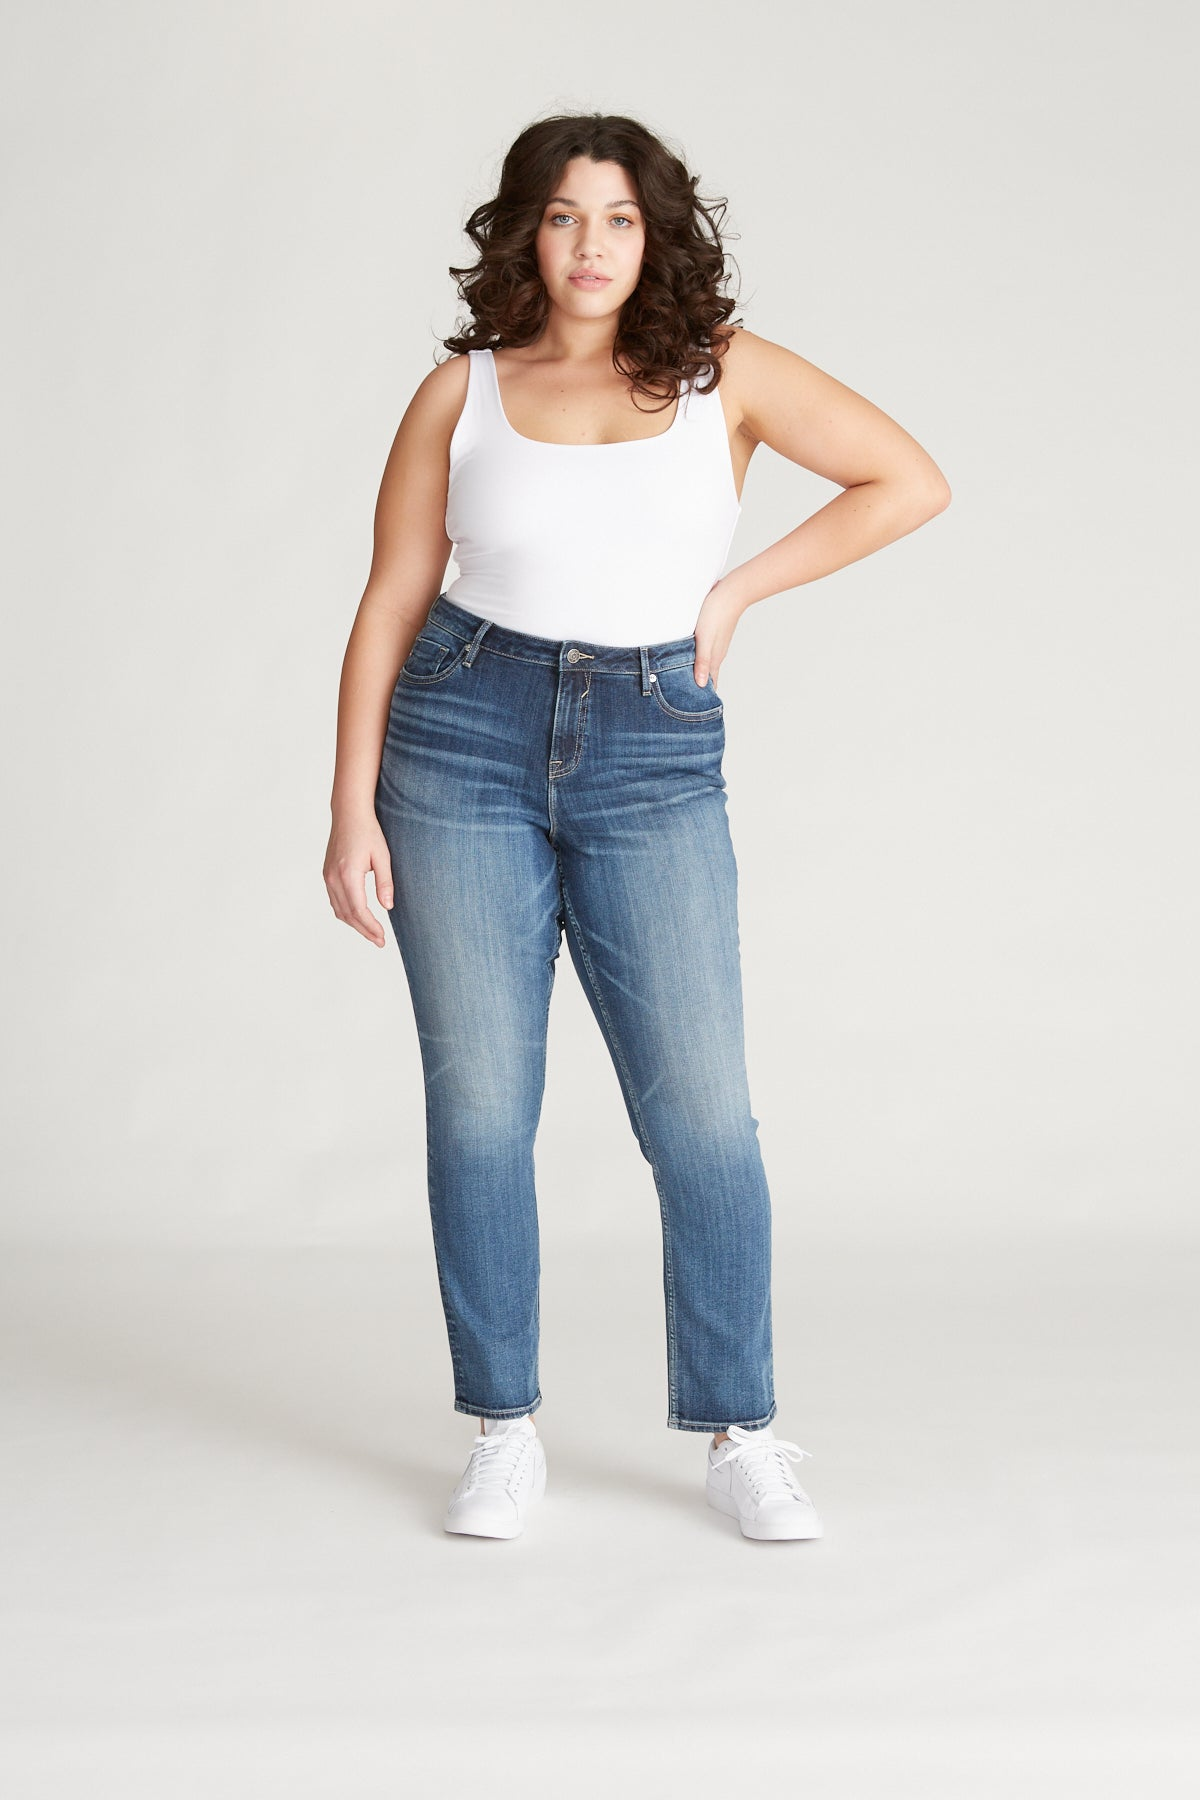 Marley Mid Rise Straight [Plus Size] - Med